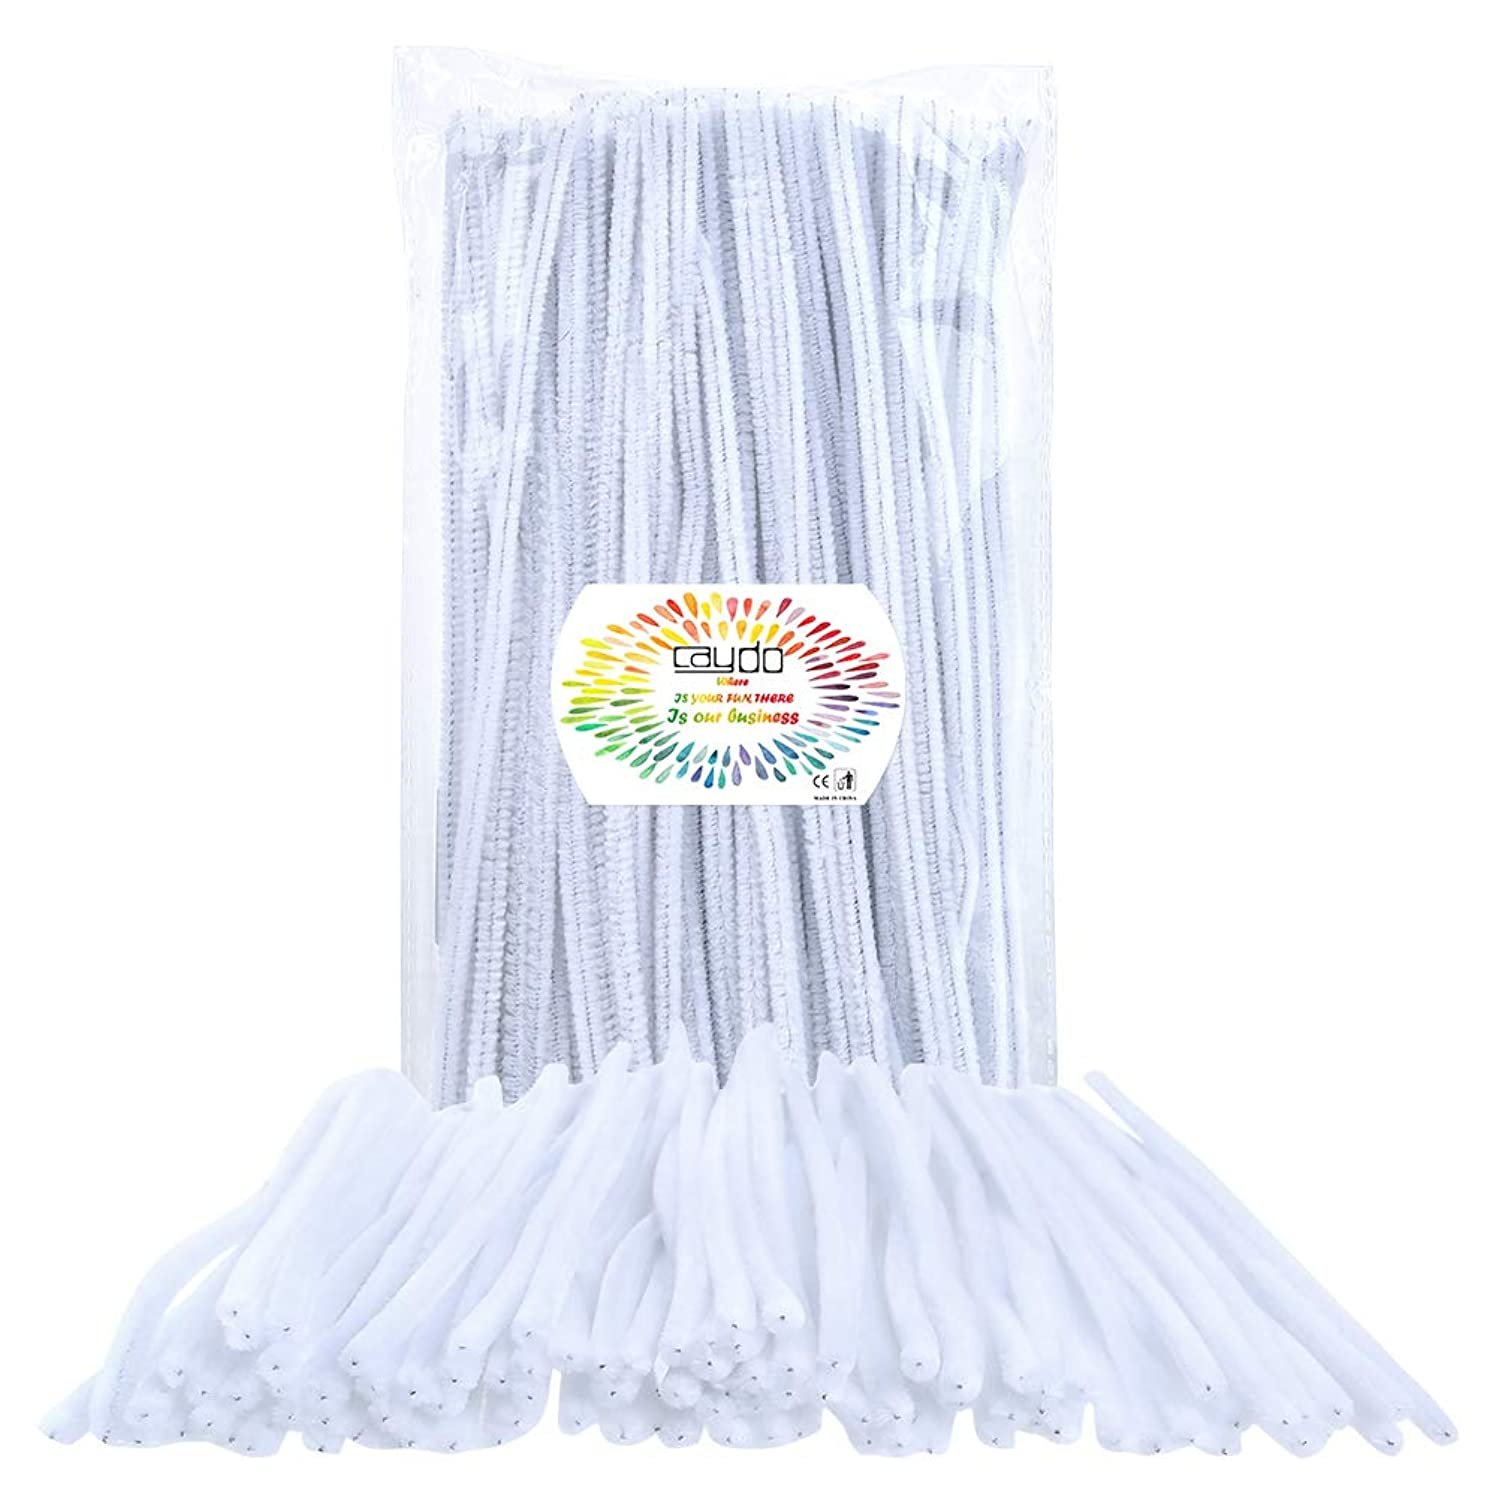 Caydo 150 Pieces Chenille White Pipe Cleaners for DIY, Art Creative Crafts Decorations (6 mm x 12 inch)